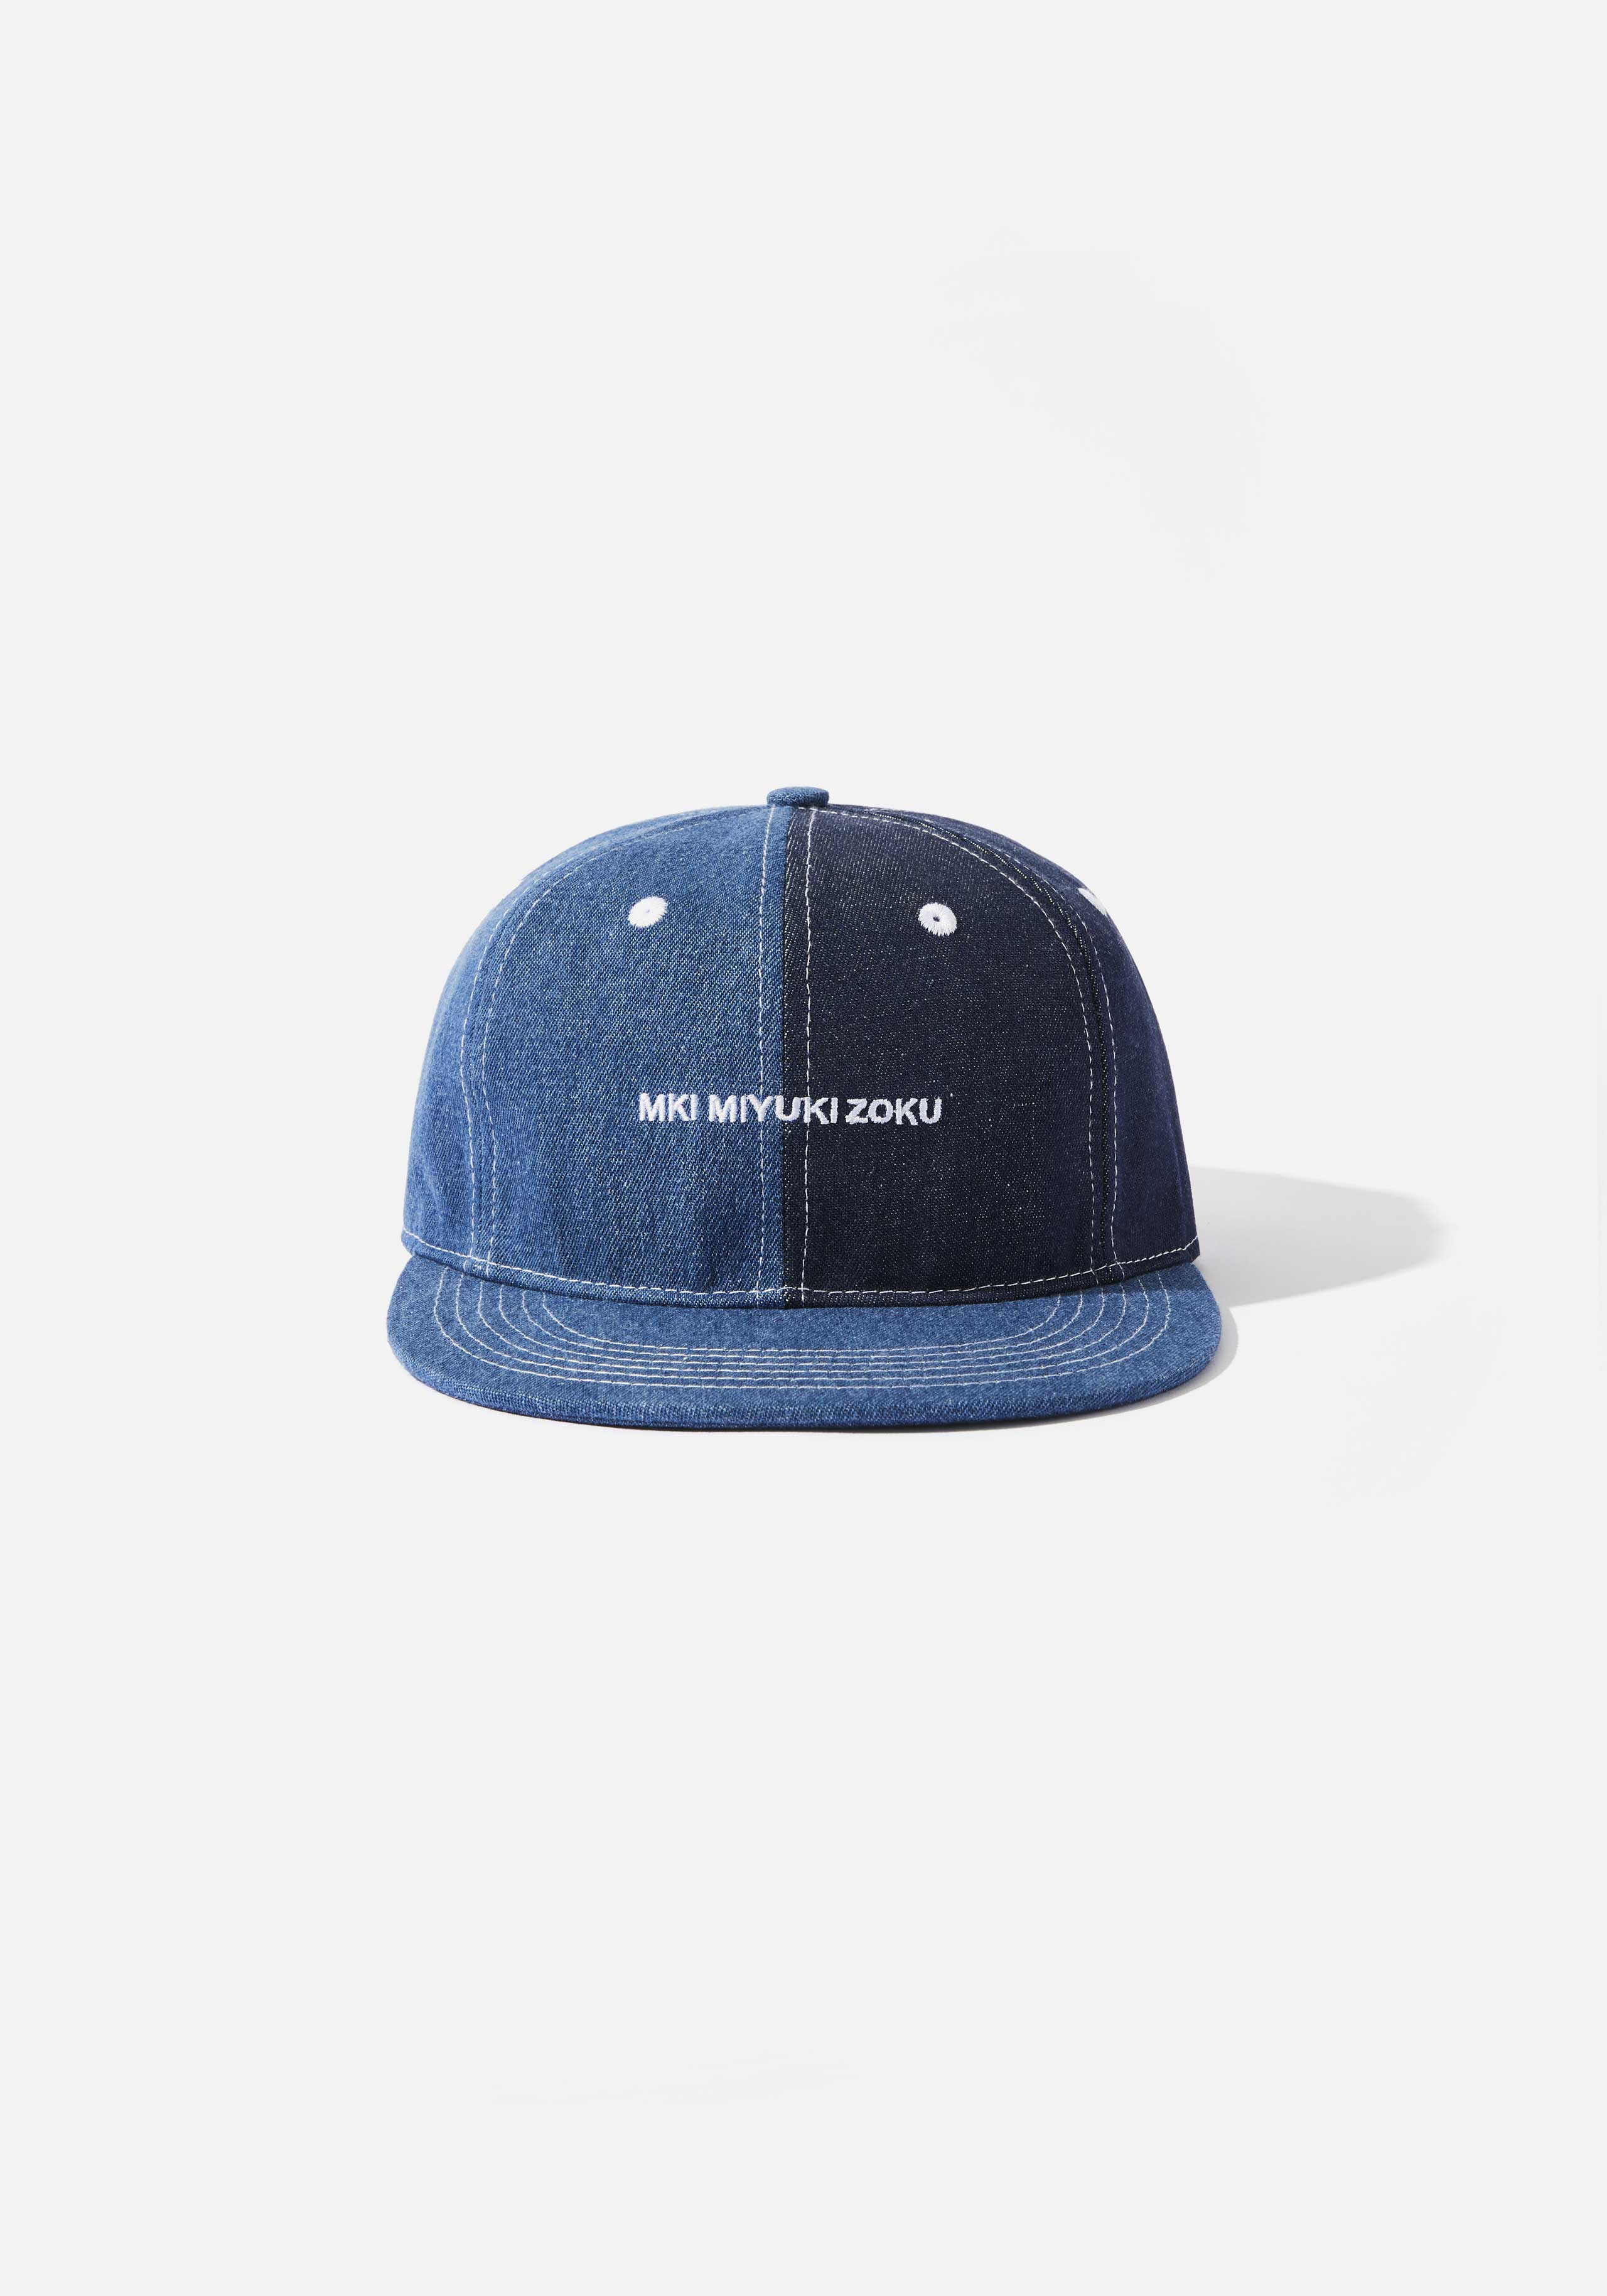 mki denim ball cap 2